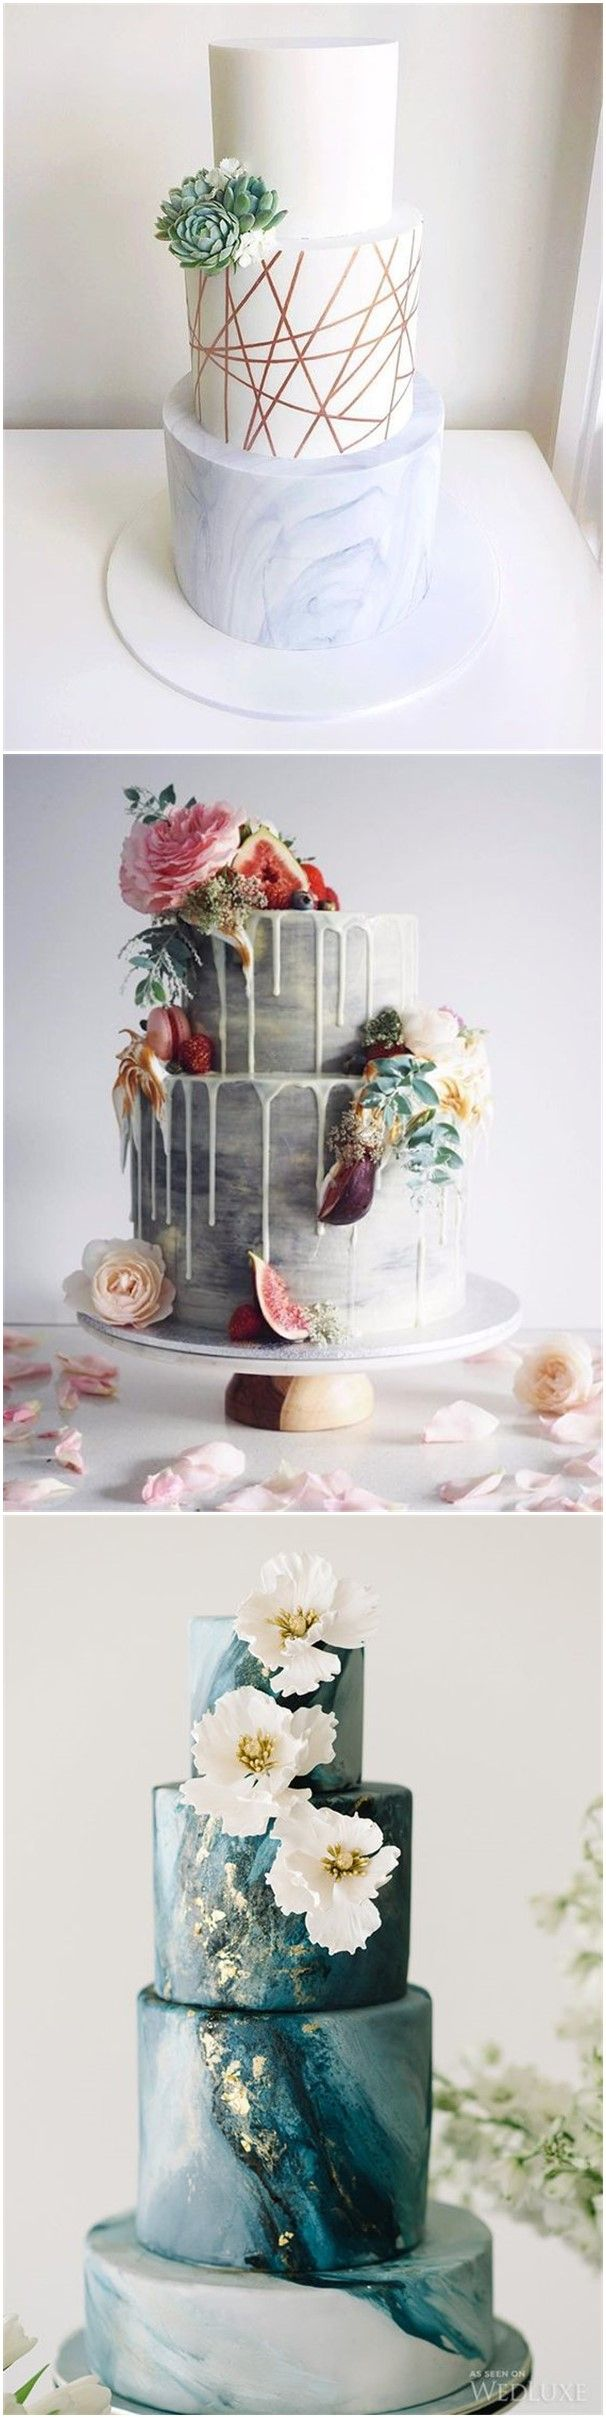 Wedding Cakes » 23    Unique and Elegant Marble Wedding Cake Ideas 2017 » ❤️ See more:    http://www.weddinginclude.com/2017/06/unique-and-elegant-marble-wedding-cake-ideas/